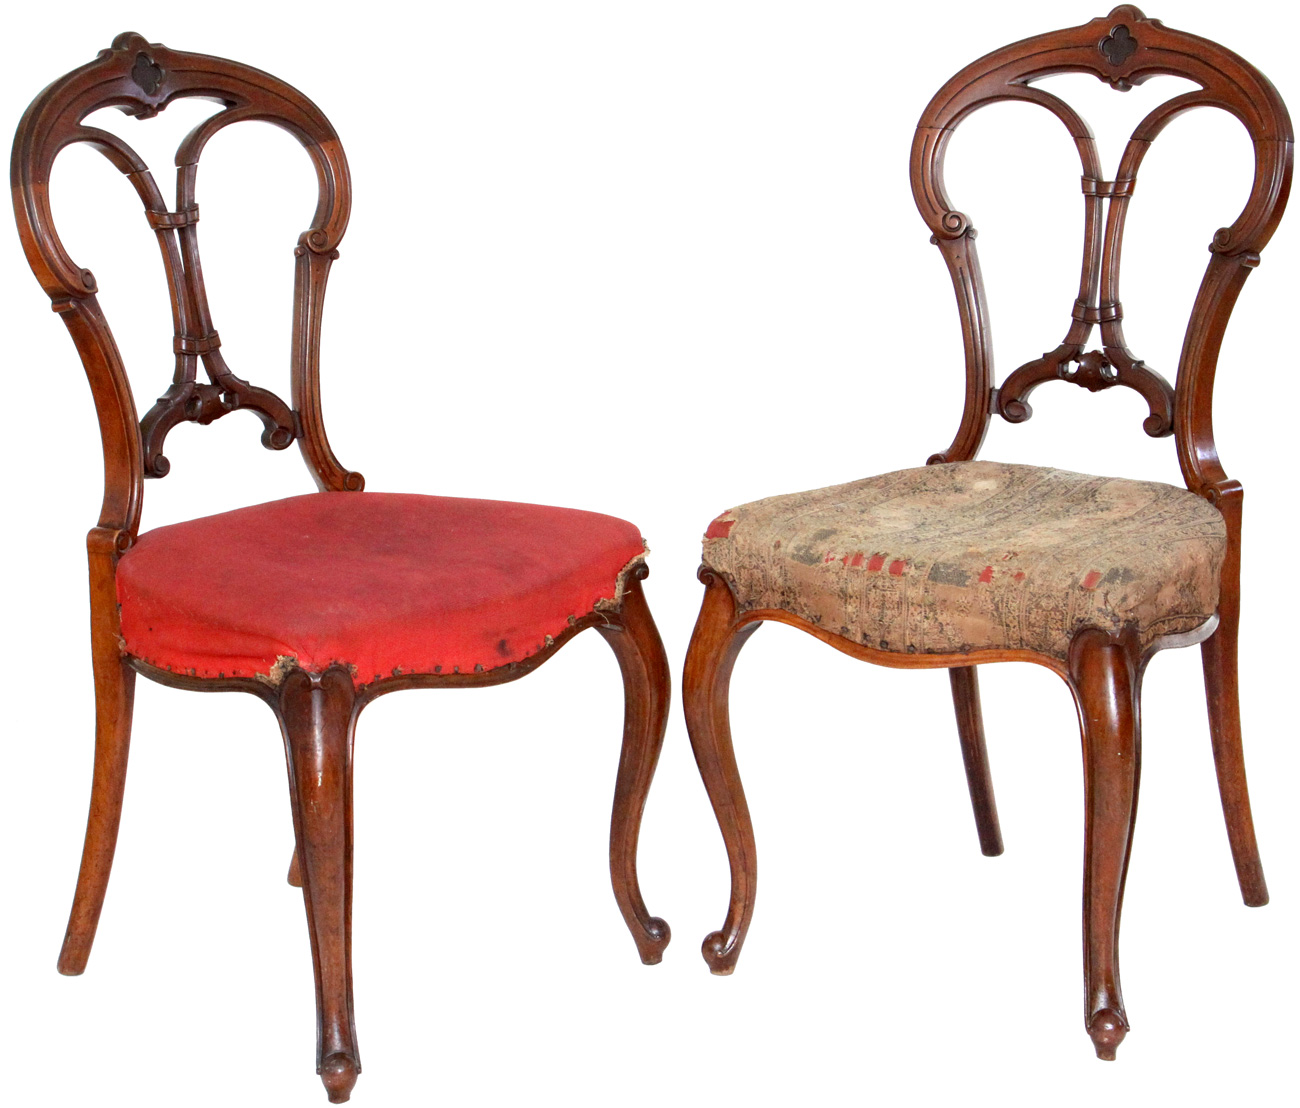 A pair of Antique Victorian Balloon Back Chairs with carved back,  upholstered seat and cabriole front legs - Antique Victorian Balloon Back Chairs